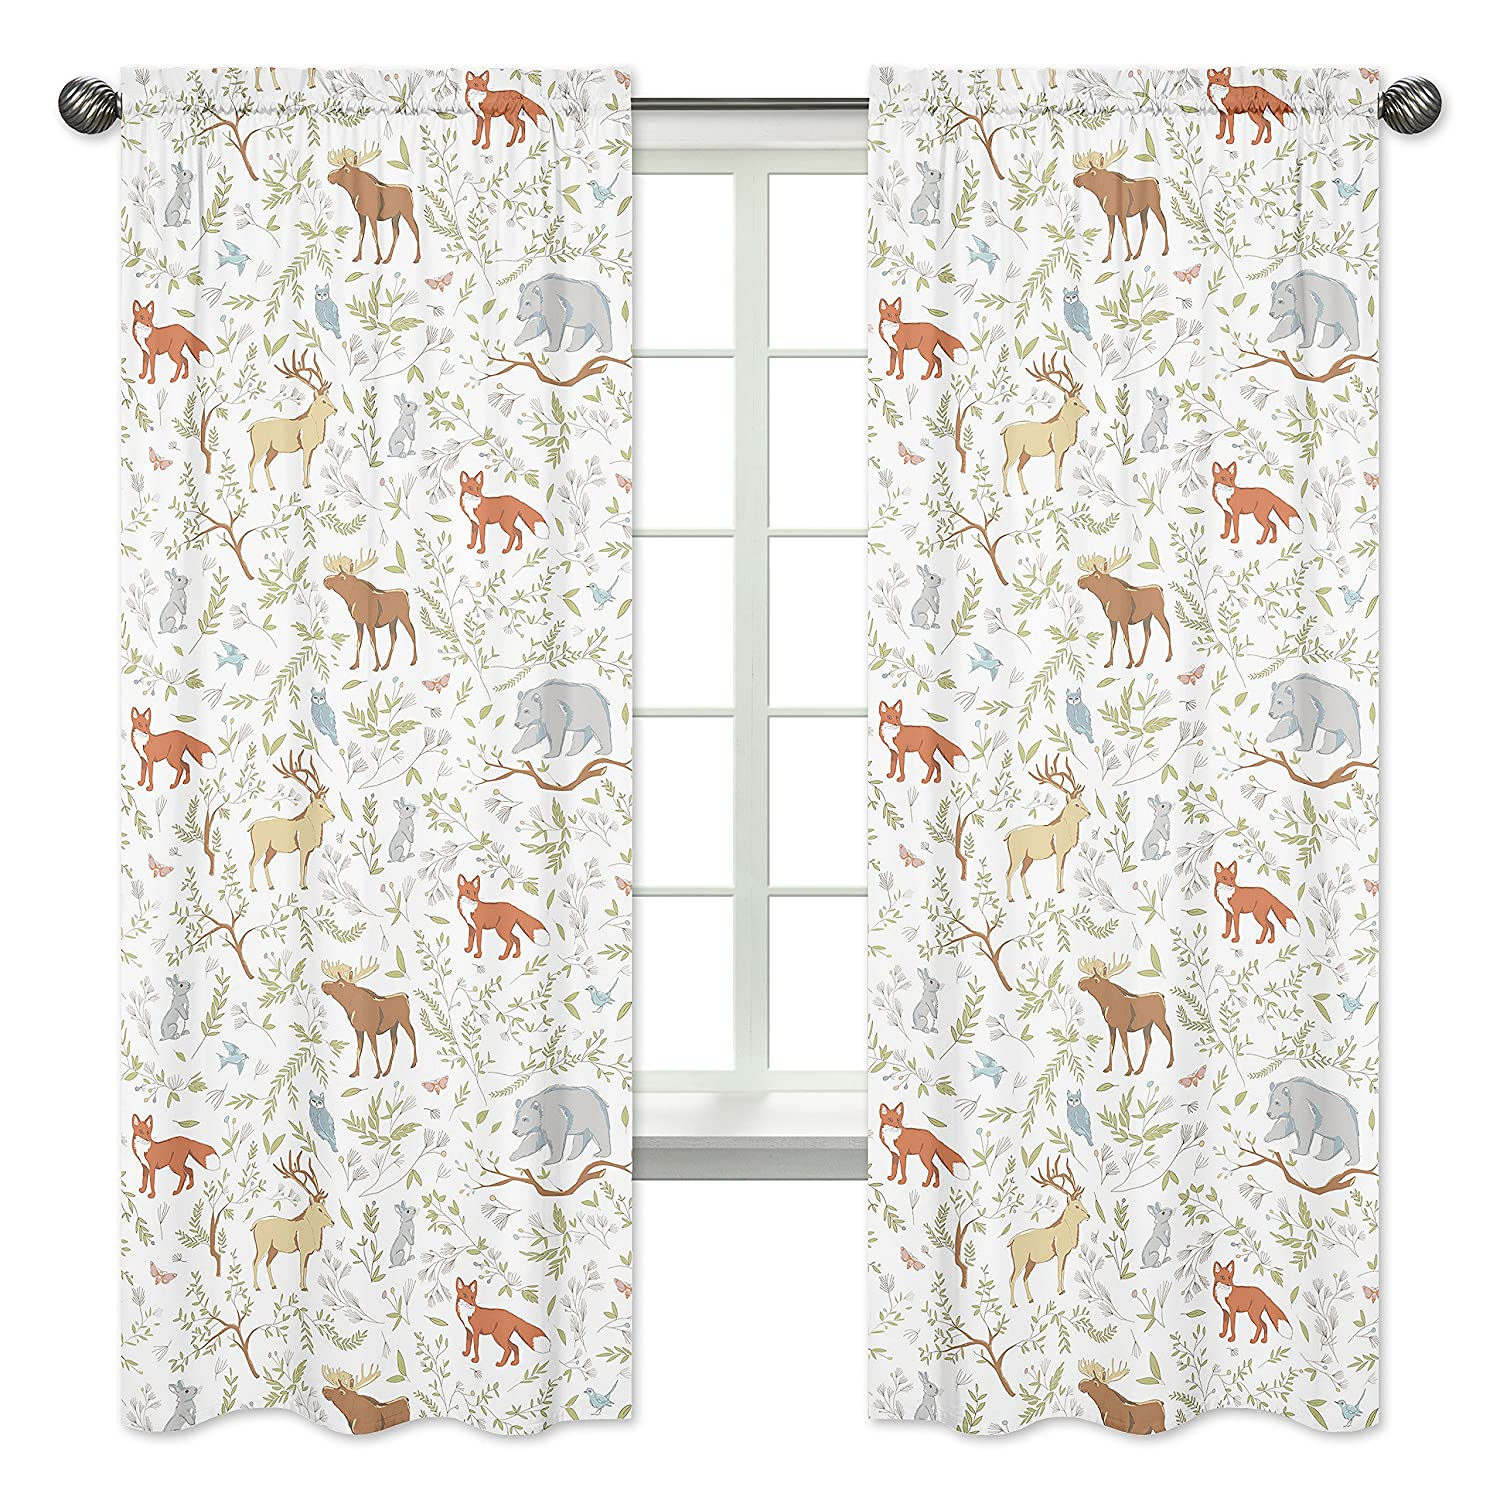 Blue, Grey and White Woodland Deer Fox Bear Animal Toile Girl or Boy Bedroom Decor Window Treatment Panels - Set of 2